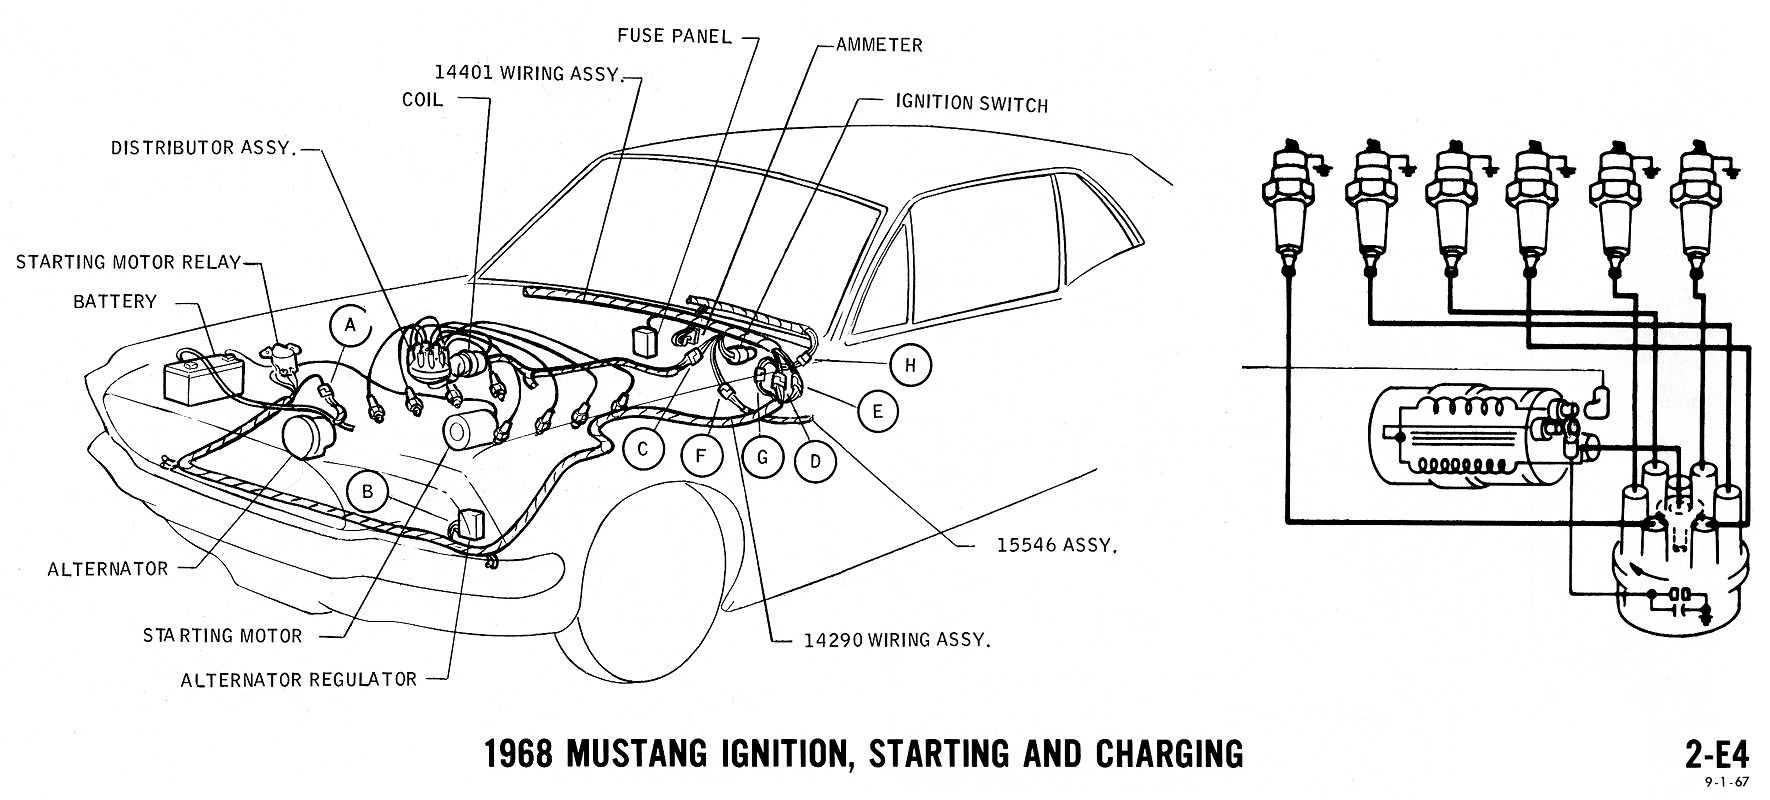 1968 Mustang Wiring Diagrams Evolving Software Ground Diagram 71 Charging Starting